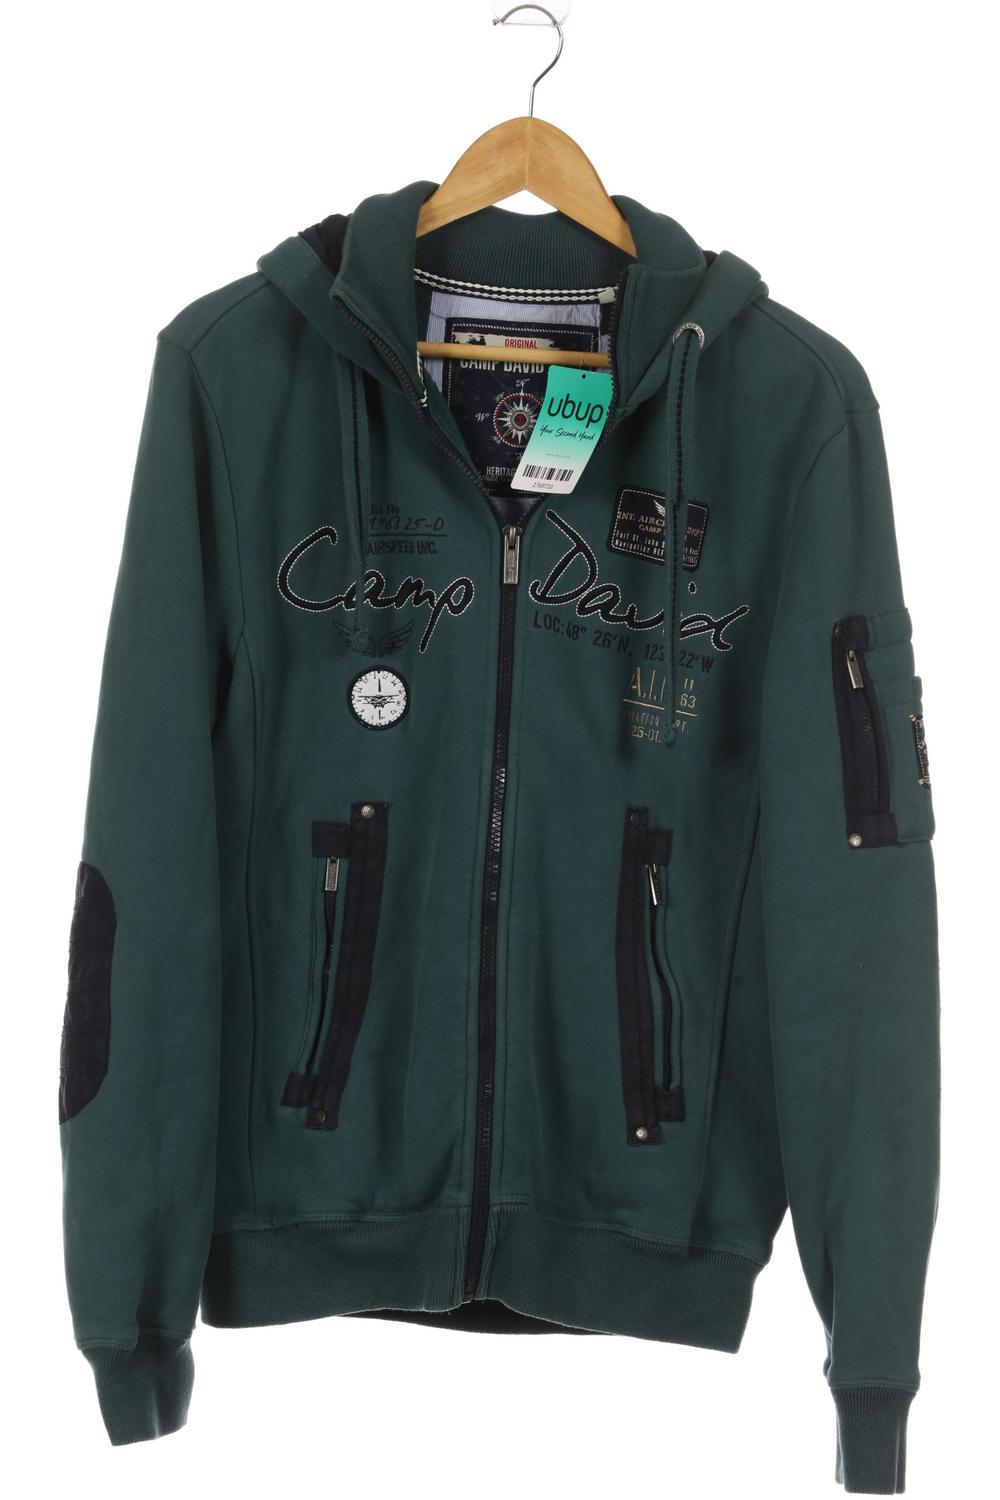 Camp David Herren Jacke INT S Second Hand kaufen | ubup